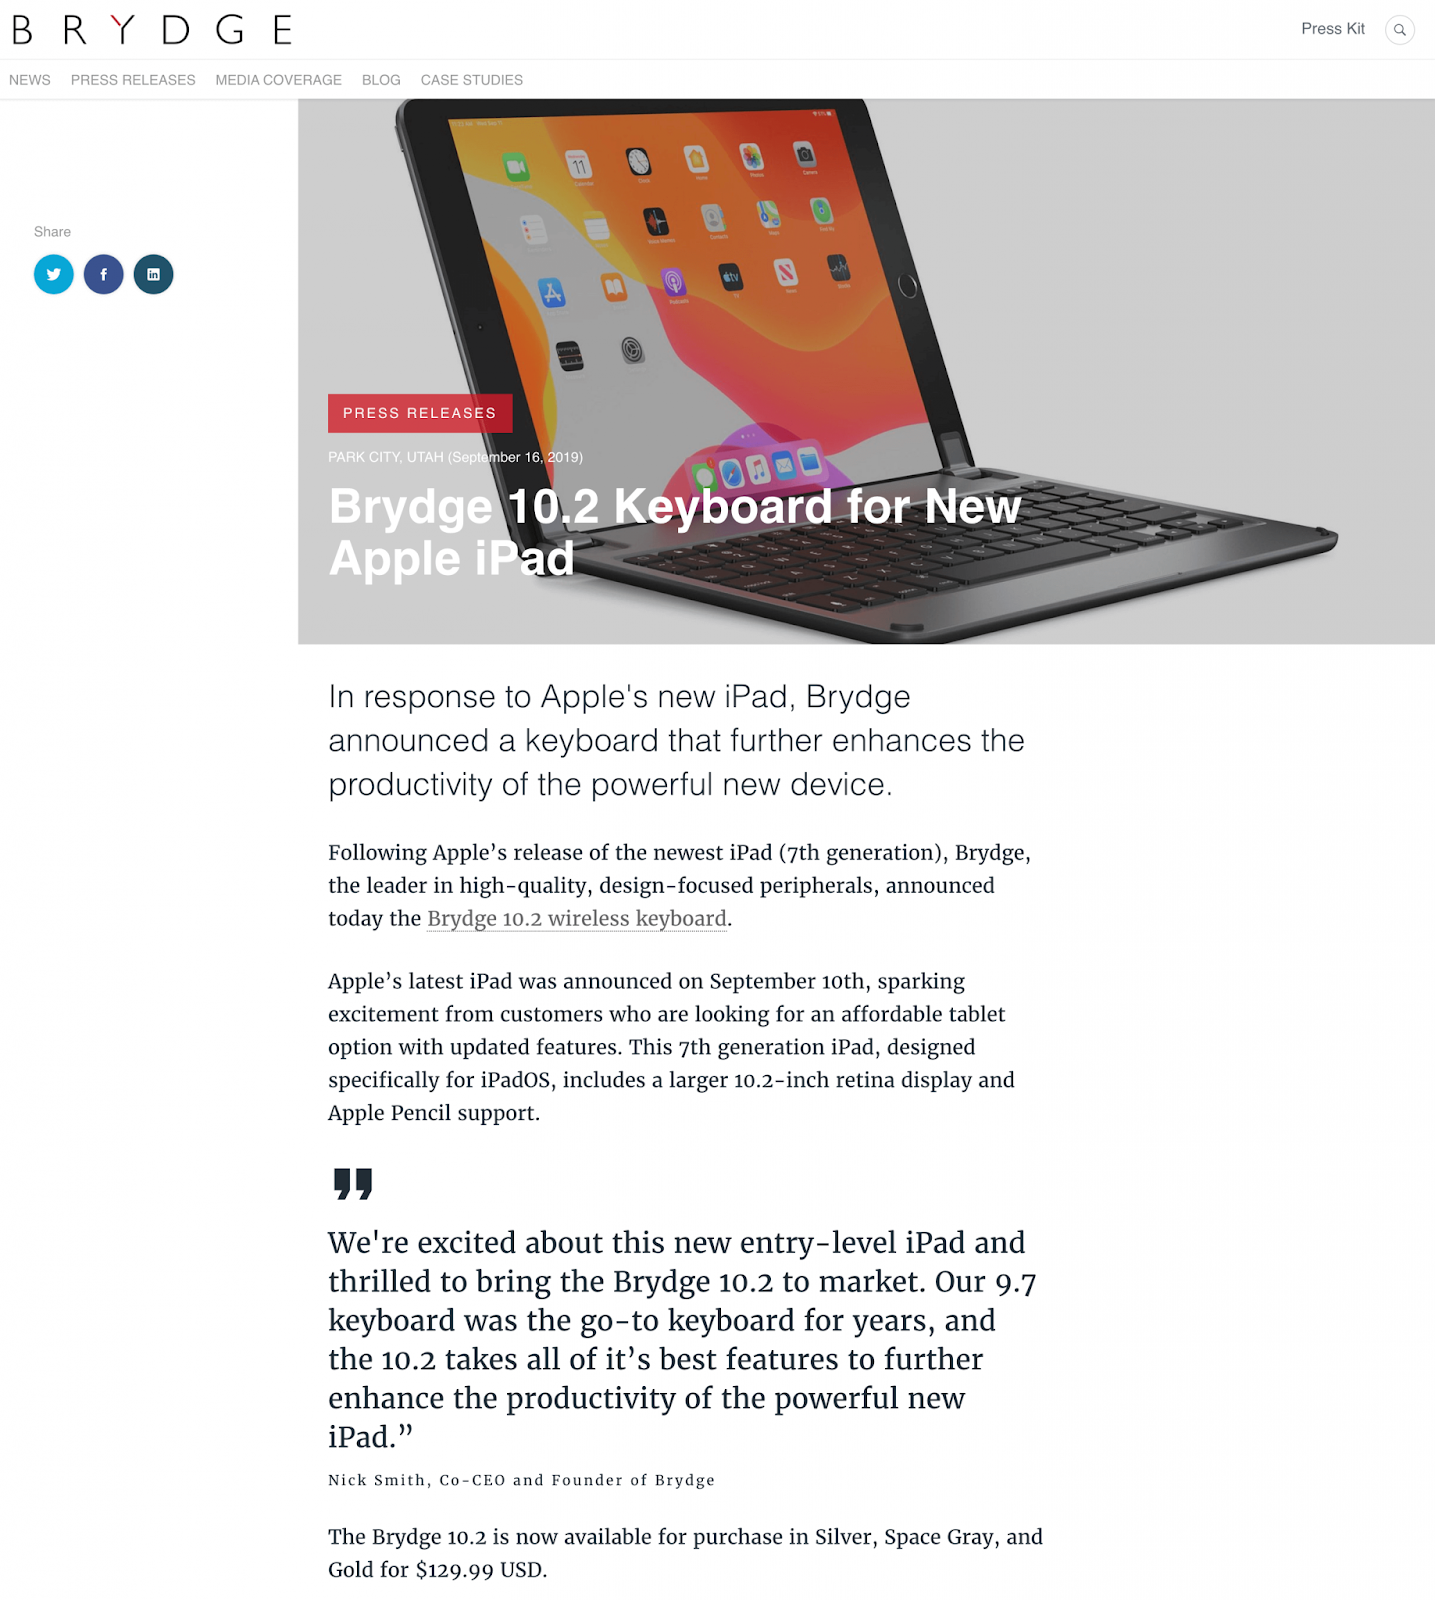 Press release example created in Prowly by Brydge